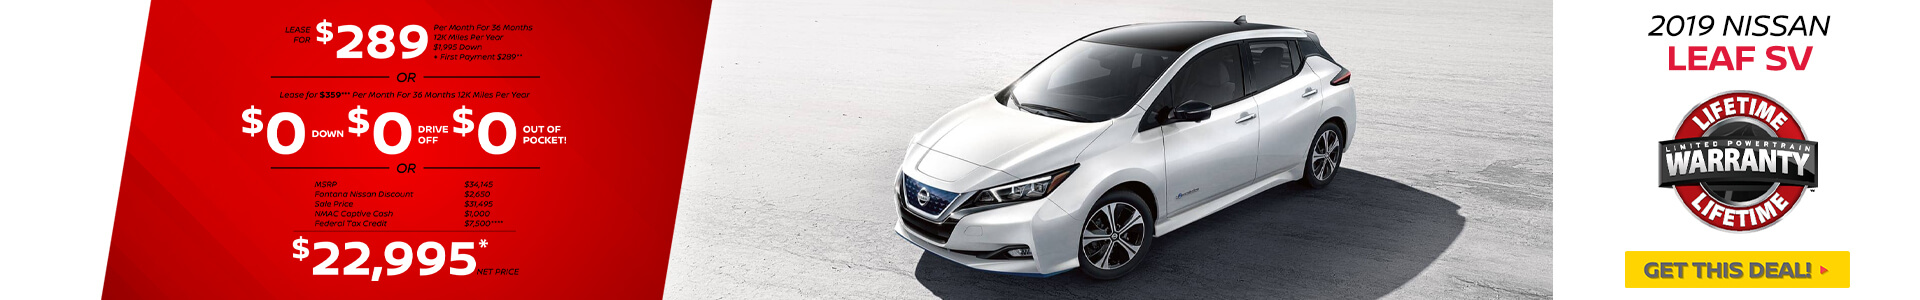 Nissan Leaf $289 Lease